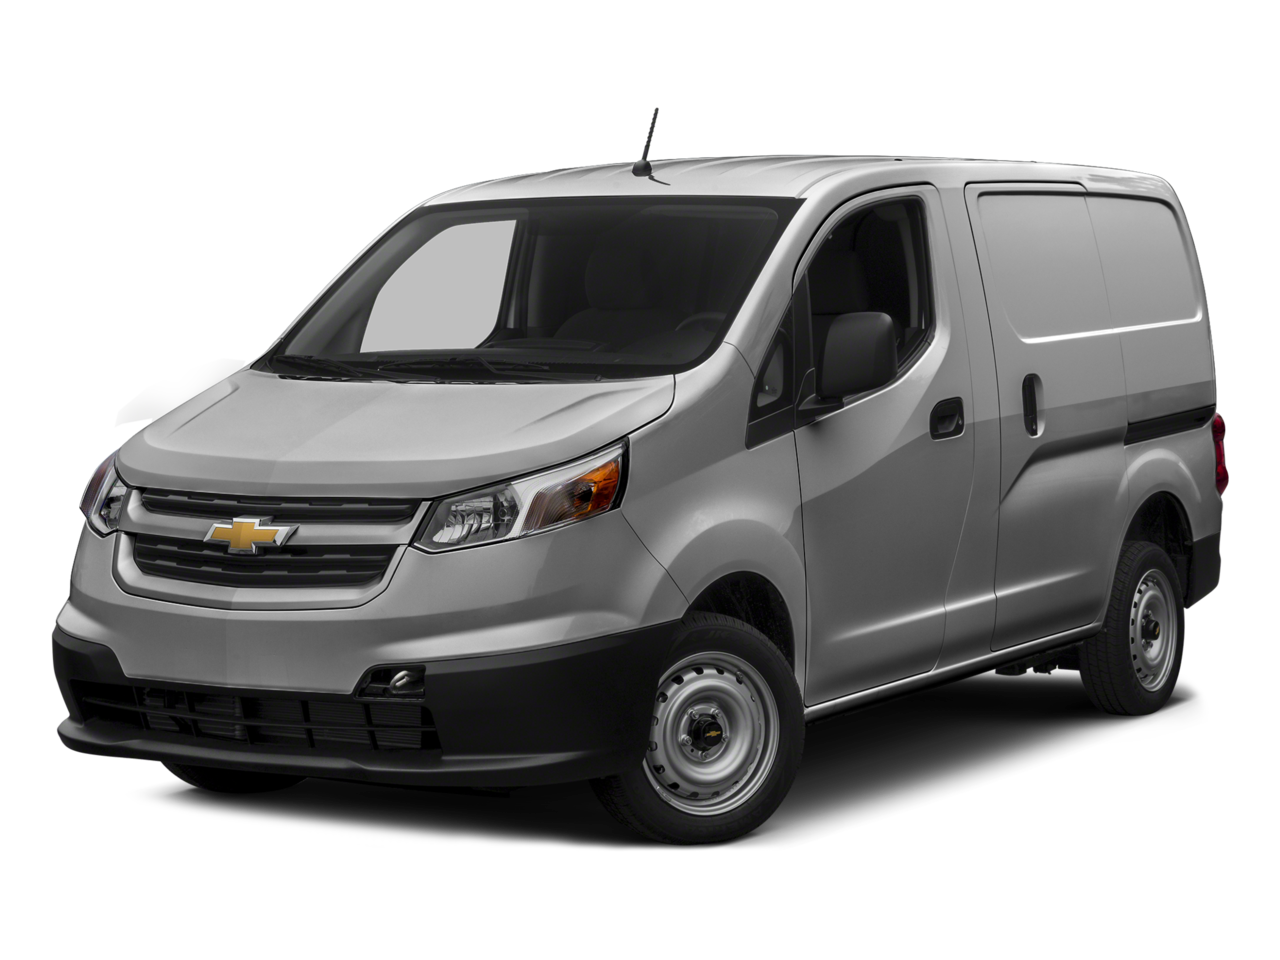 2016 Chevrolet City Express #4